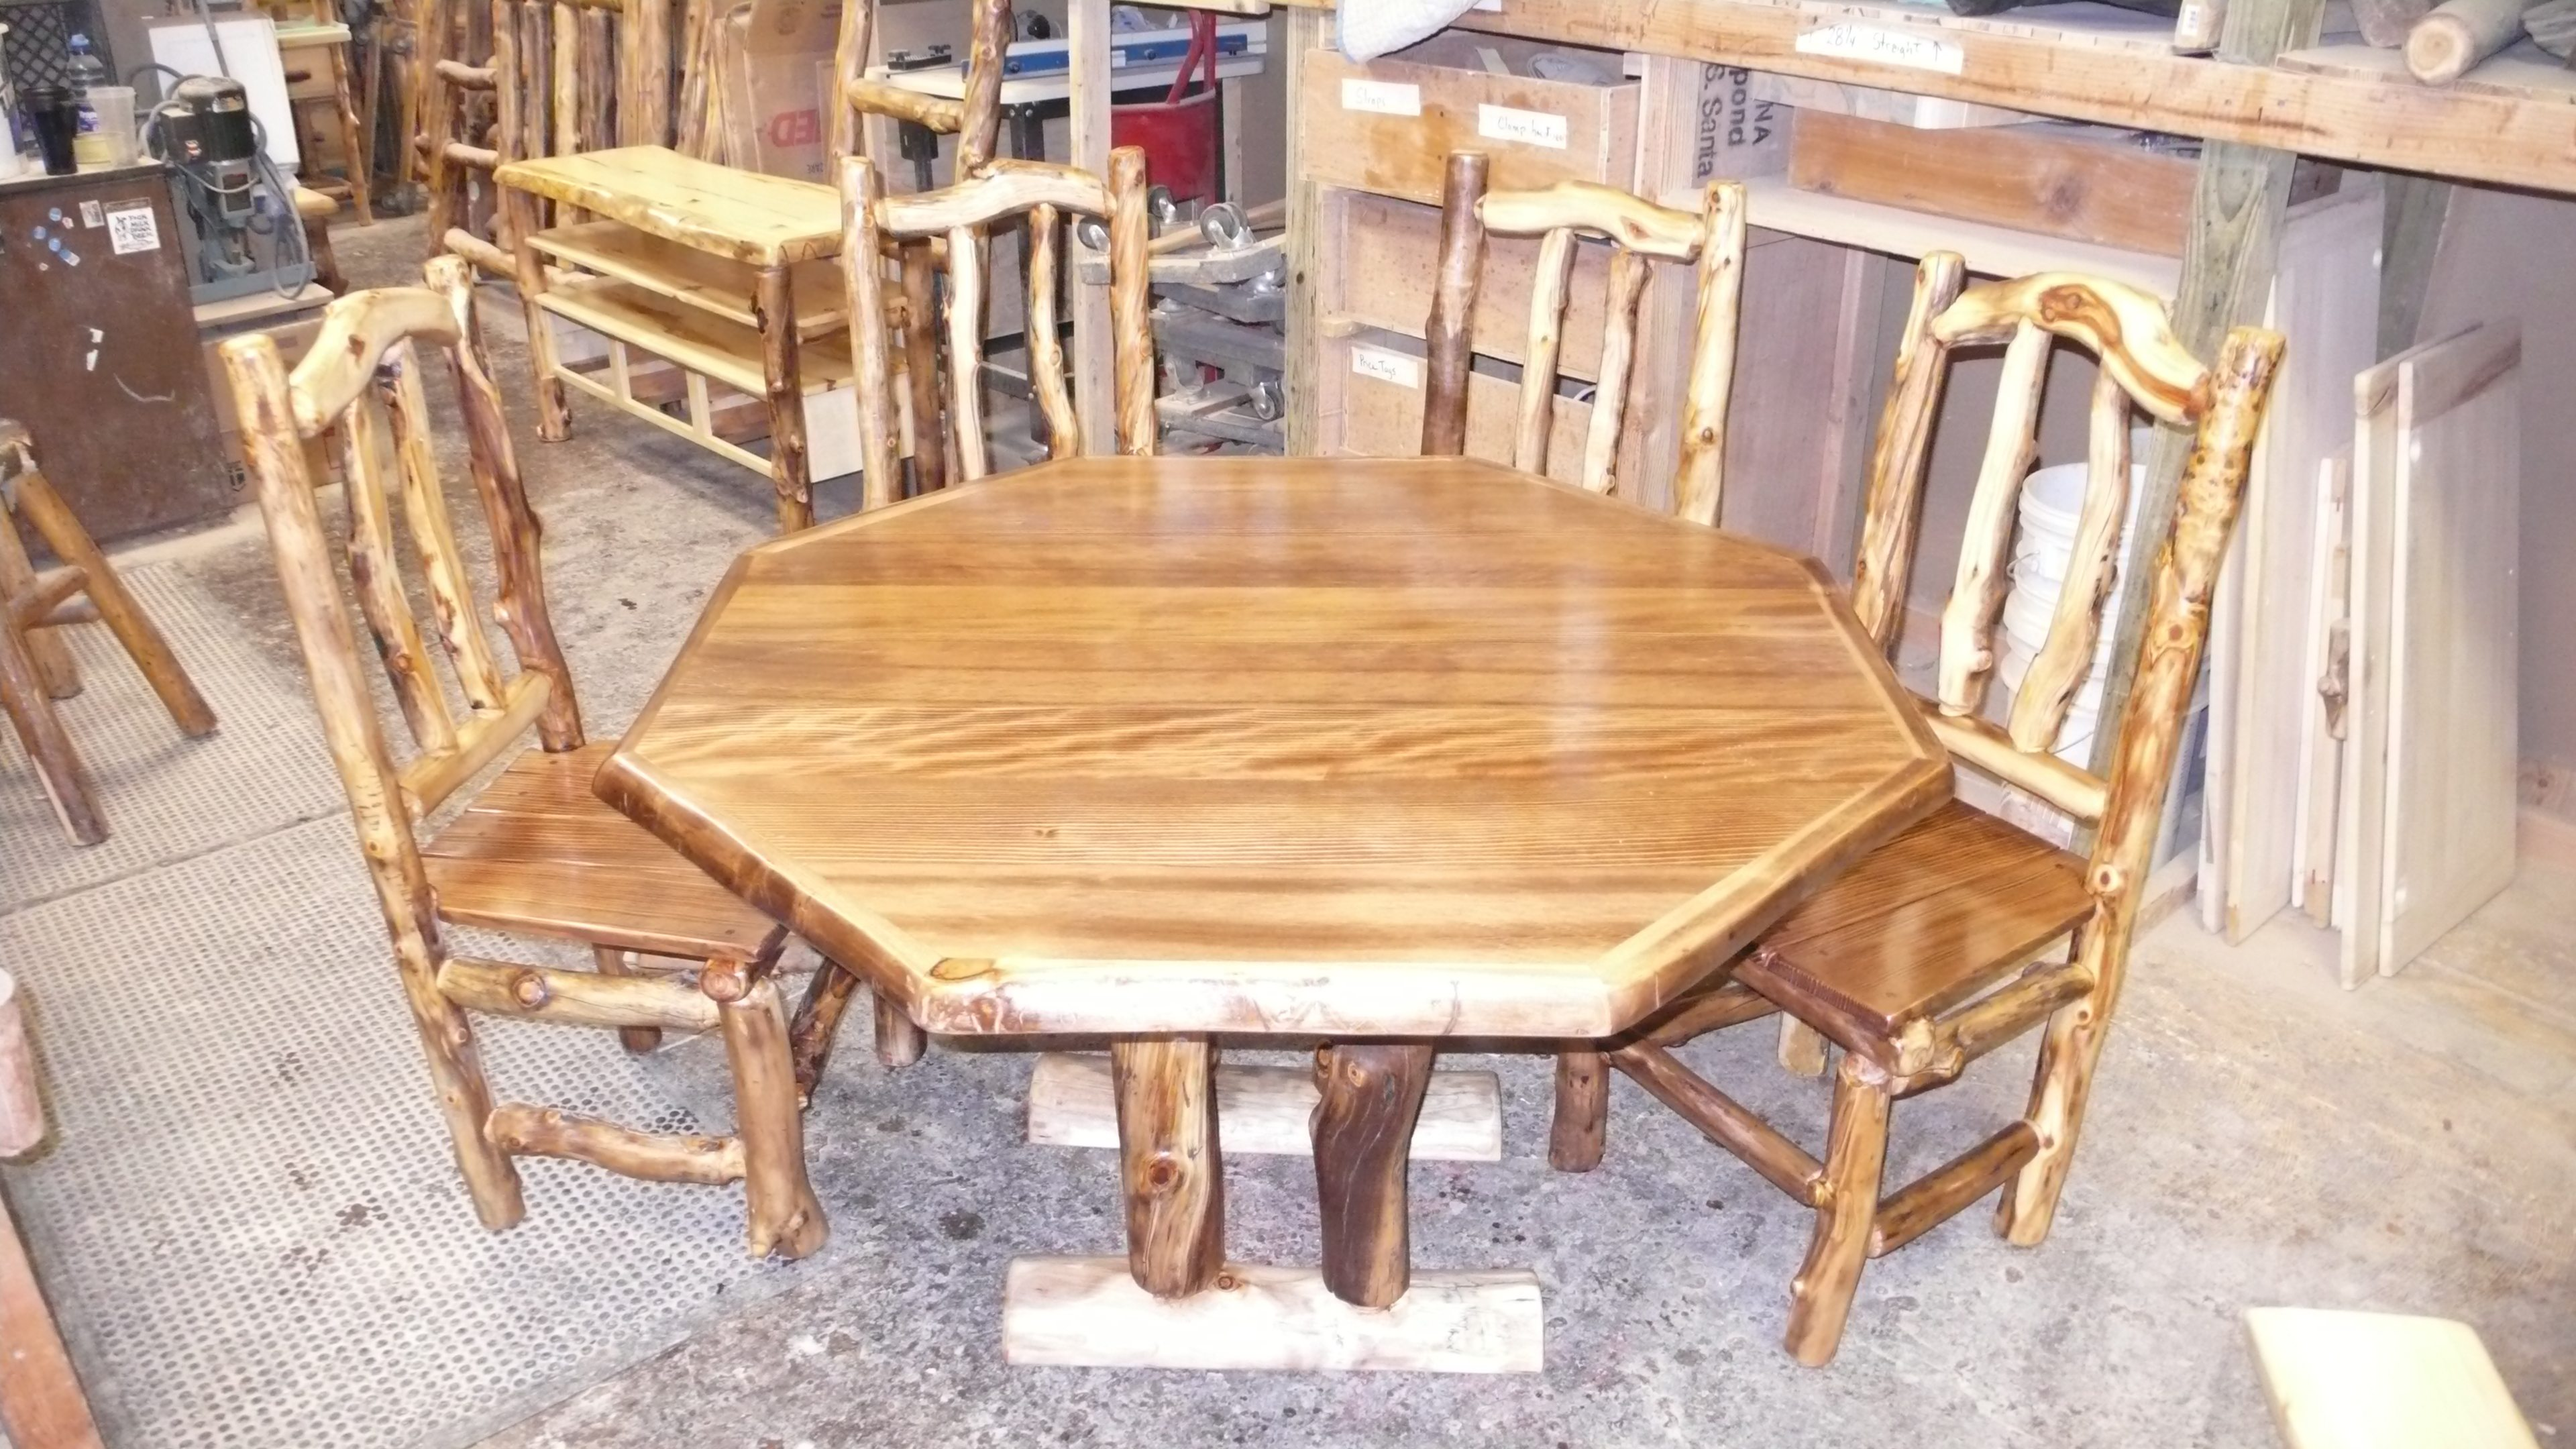 Octagonal Douglas Fir and Aspen Log Dining Table - MedicineWolf